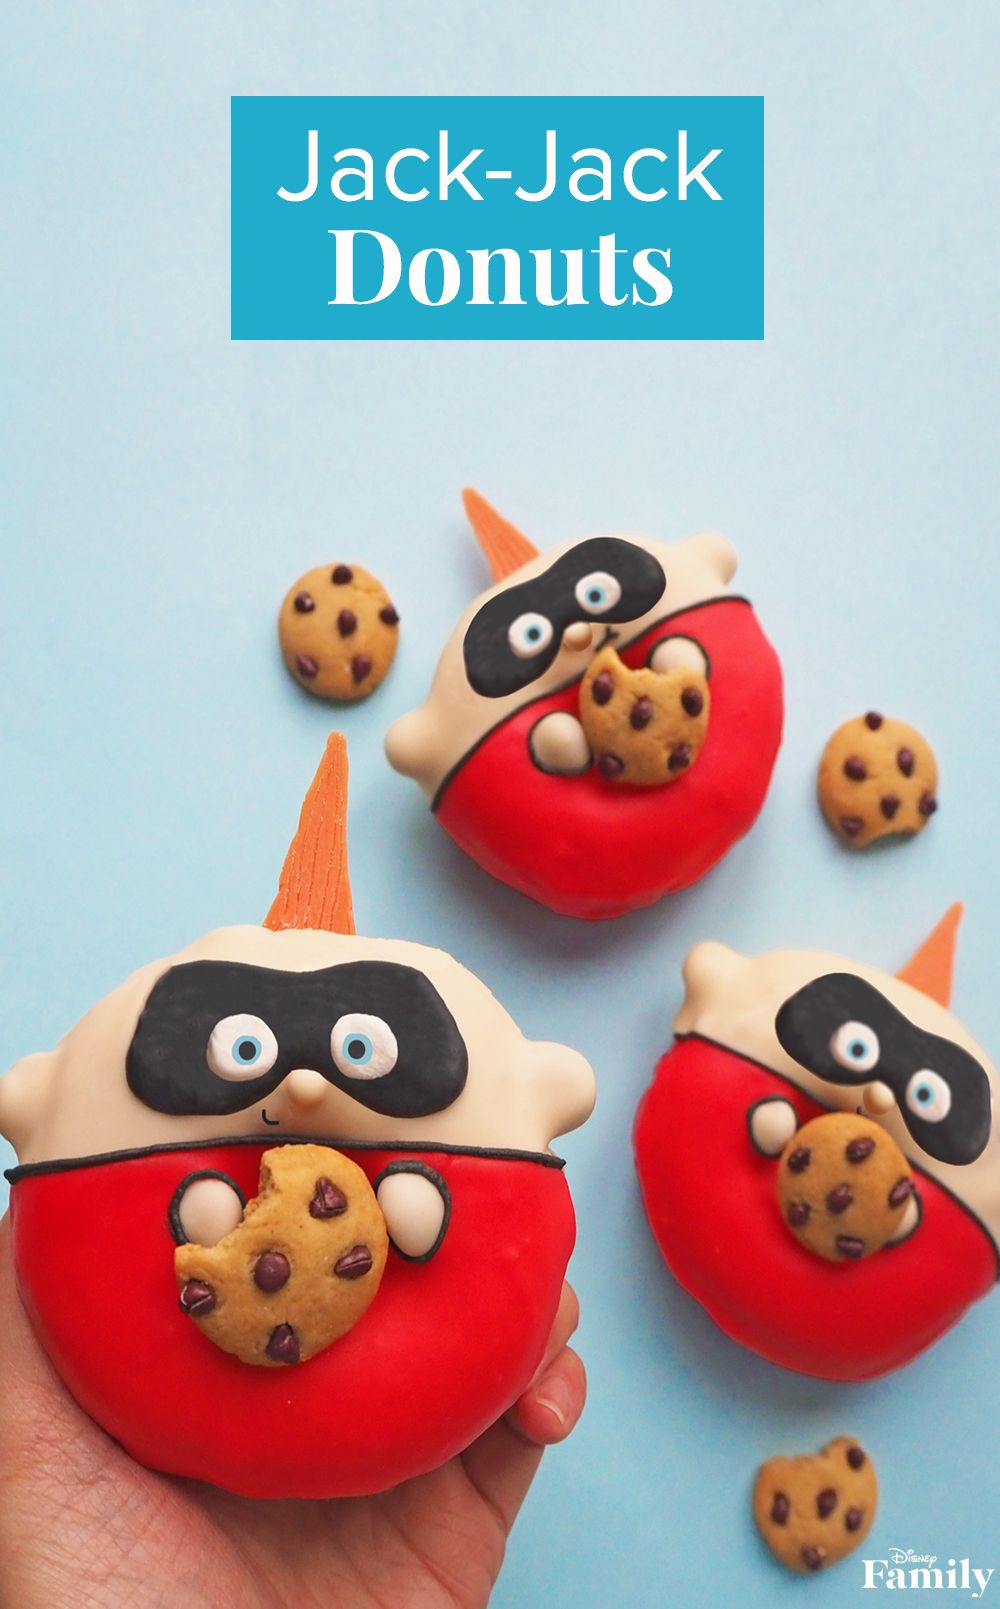 To celebrate the 'Incredibles 2' opening, create adorable Jack-Jack Donuts, paired with some scrumptious mini chocolate chip cookies. Whether you're a huge 'Incredibles' fan or just want a fun, creative afternoon in the kitchen, these donuts are a win-win! Click for the Disney•Pixar recipe.